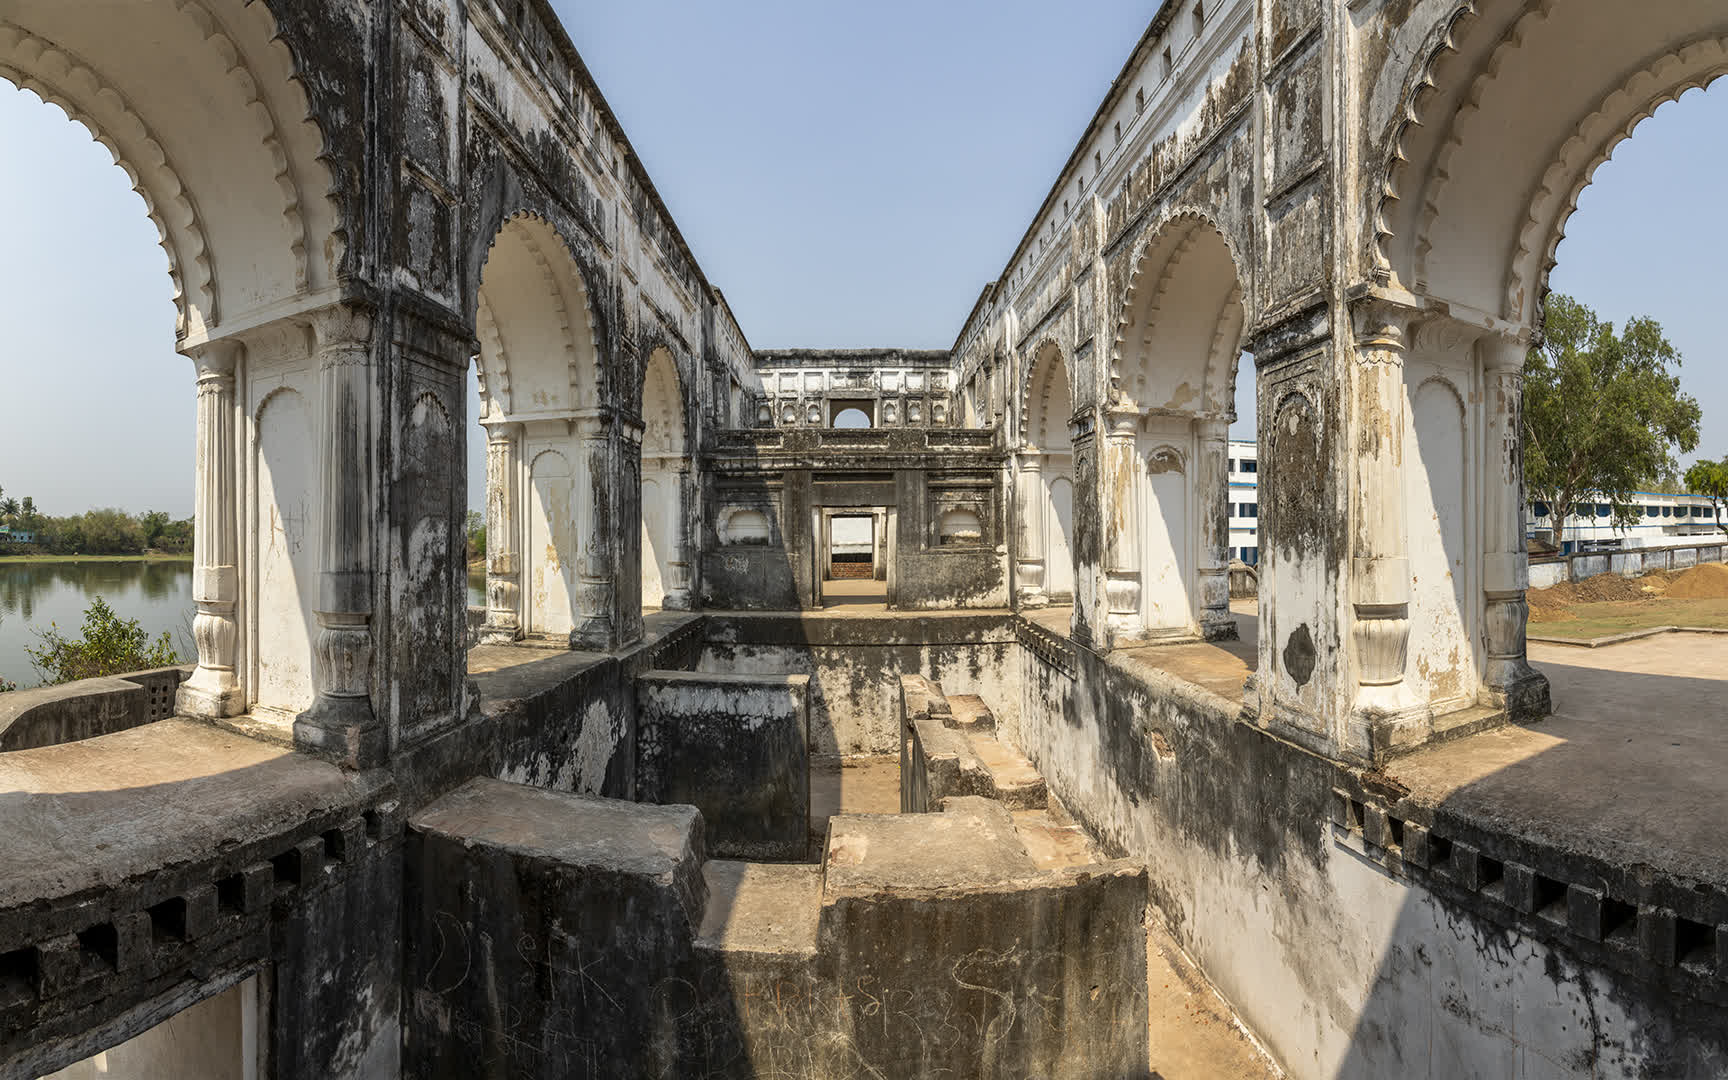 Rajnagar: A Town with a King for Two Days